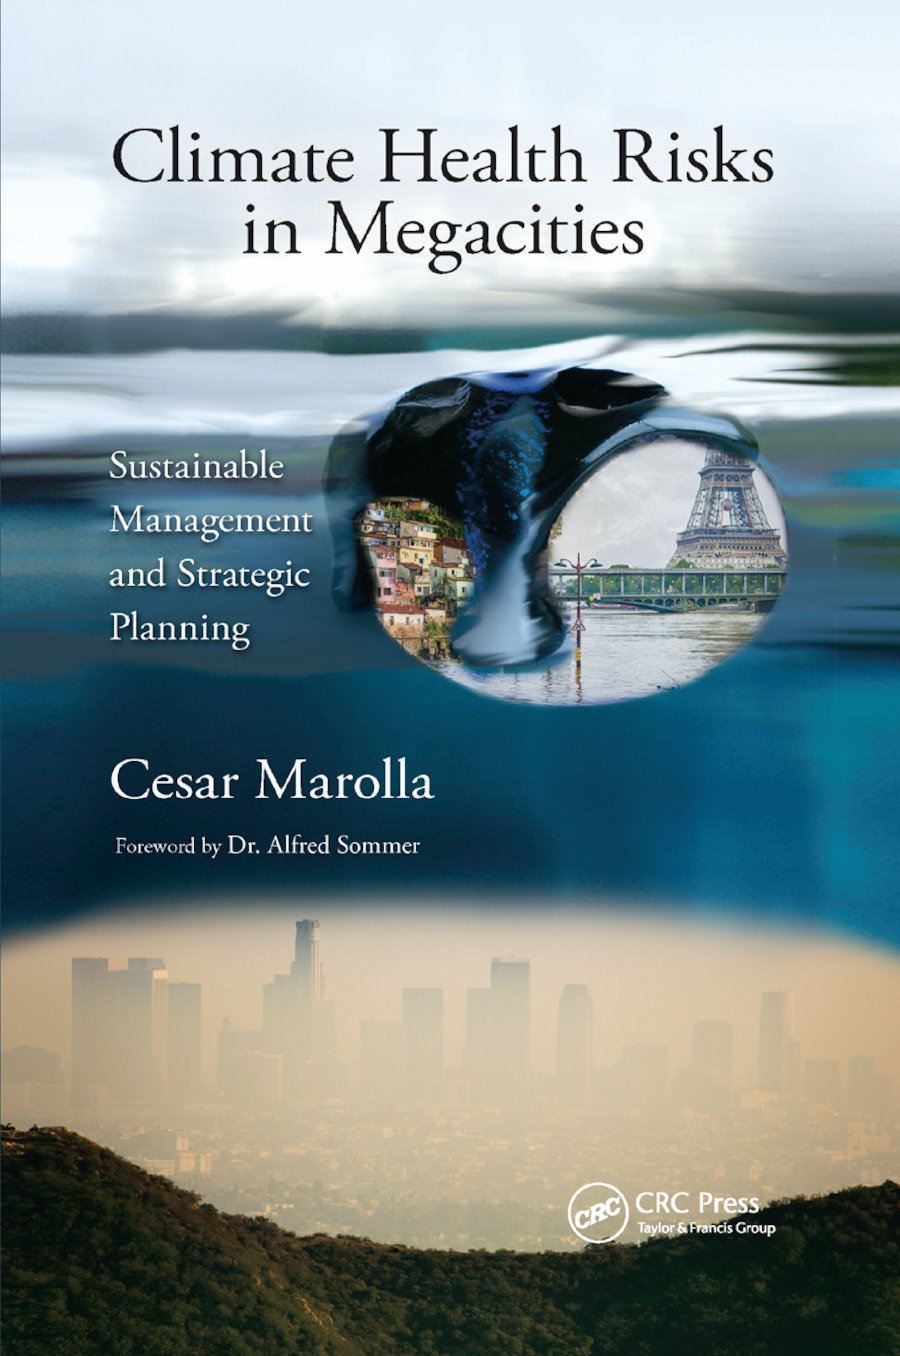 Climate Health Risks in Megacities